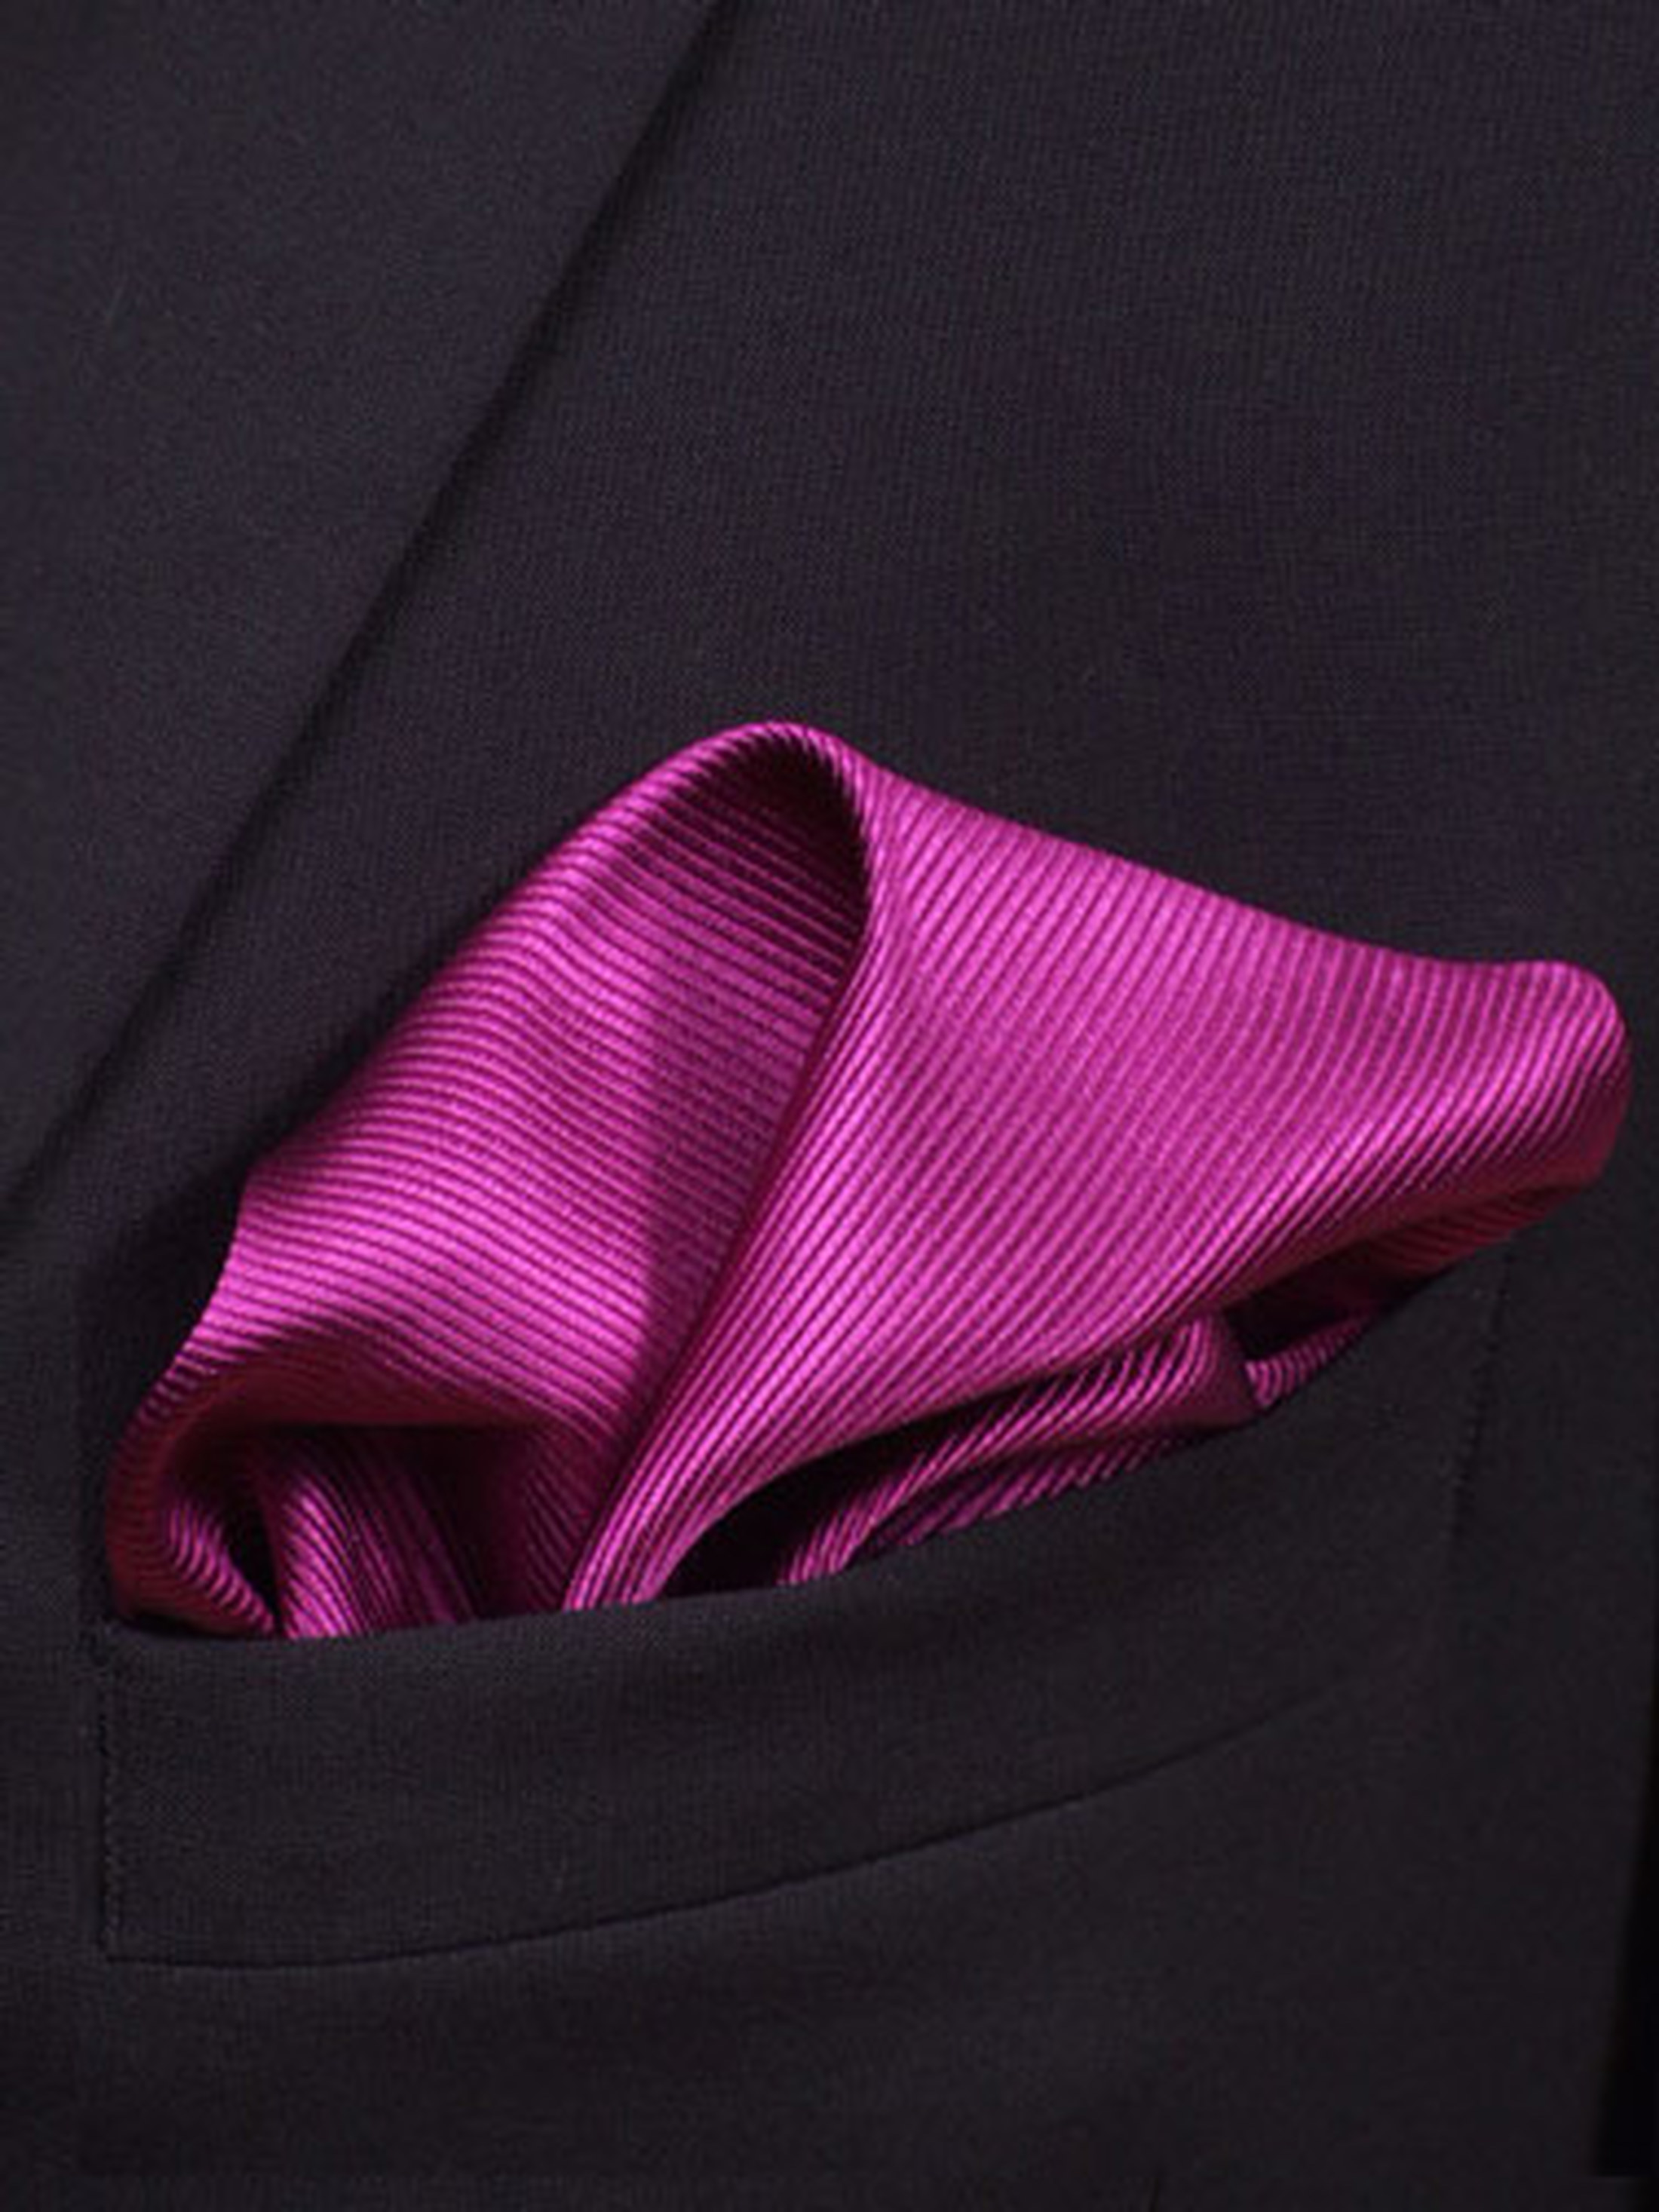 Pocket Square Aubergine F28